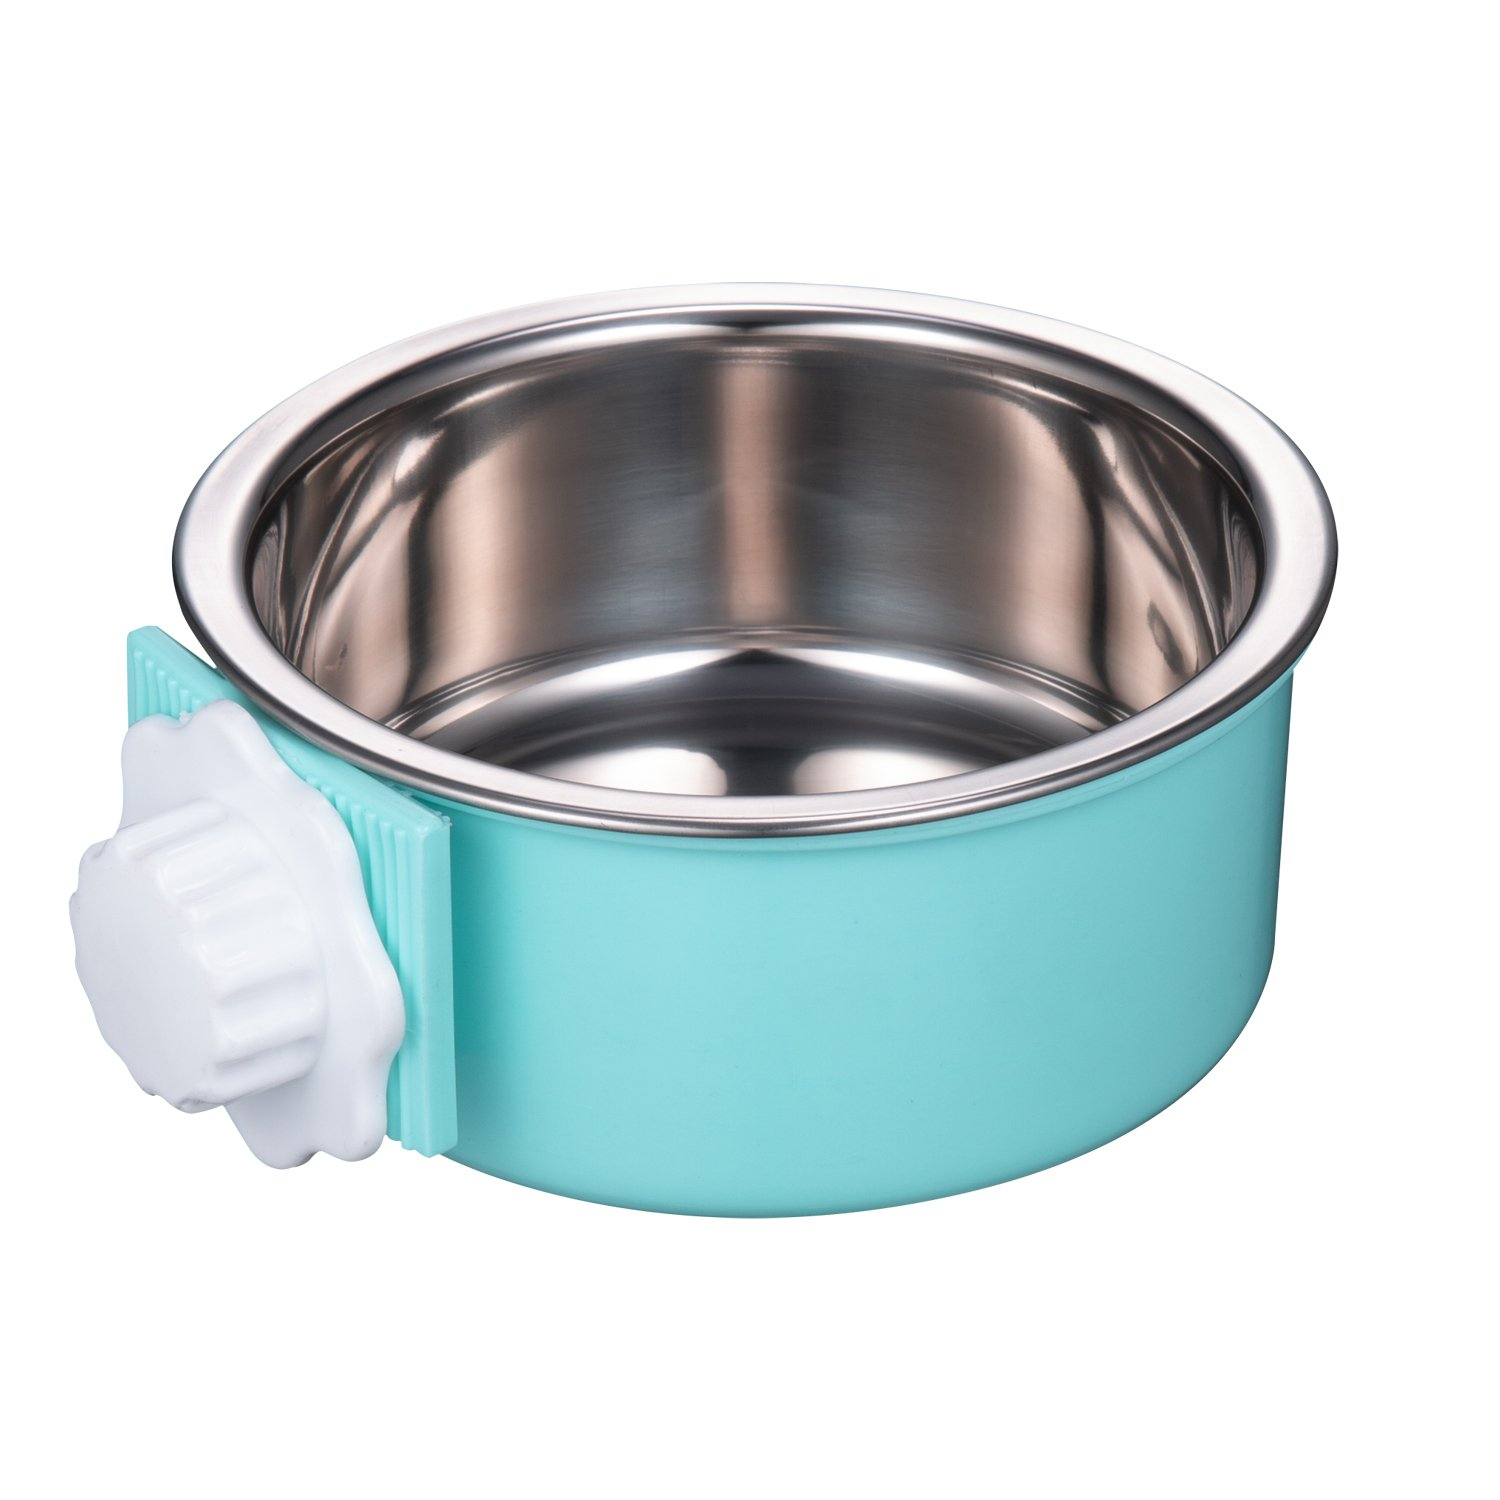 Amazon 5 stars Crate Dog Bowl, Stainless Steel Removable Hanging Food Water Bowl Cage Coop Cup for Dogs, Cats, Small Animals,14 oz